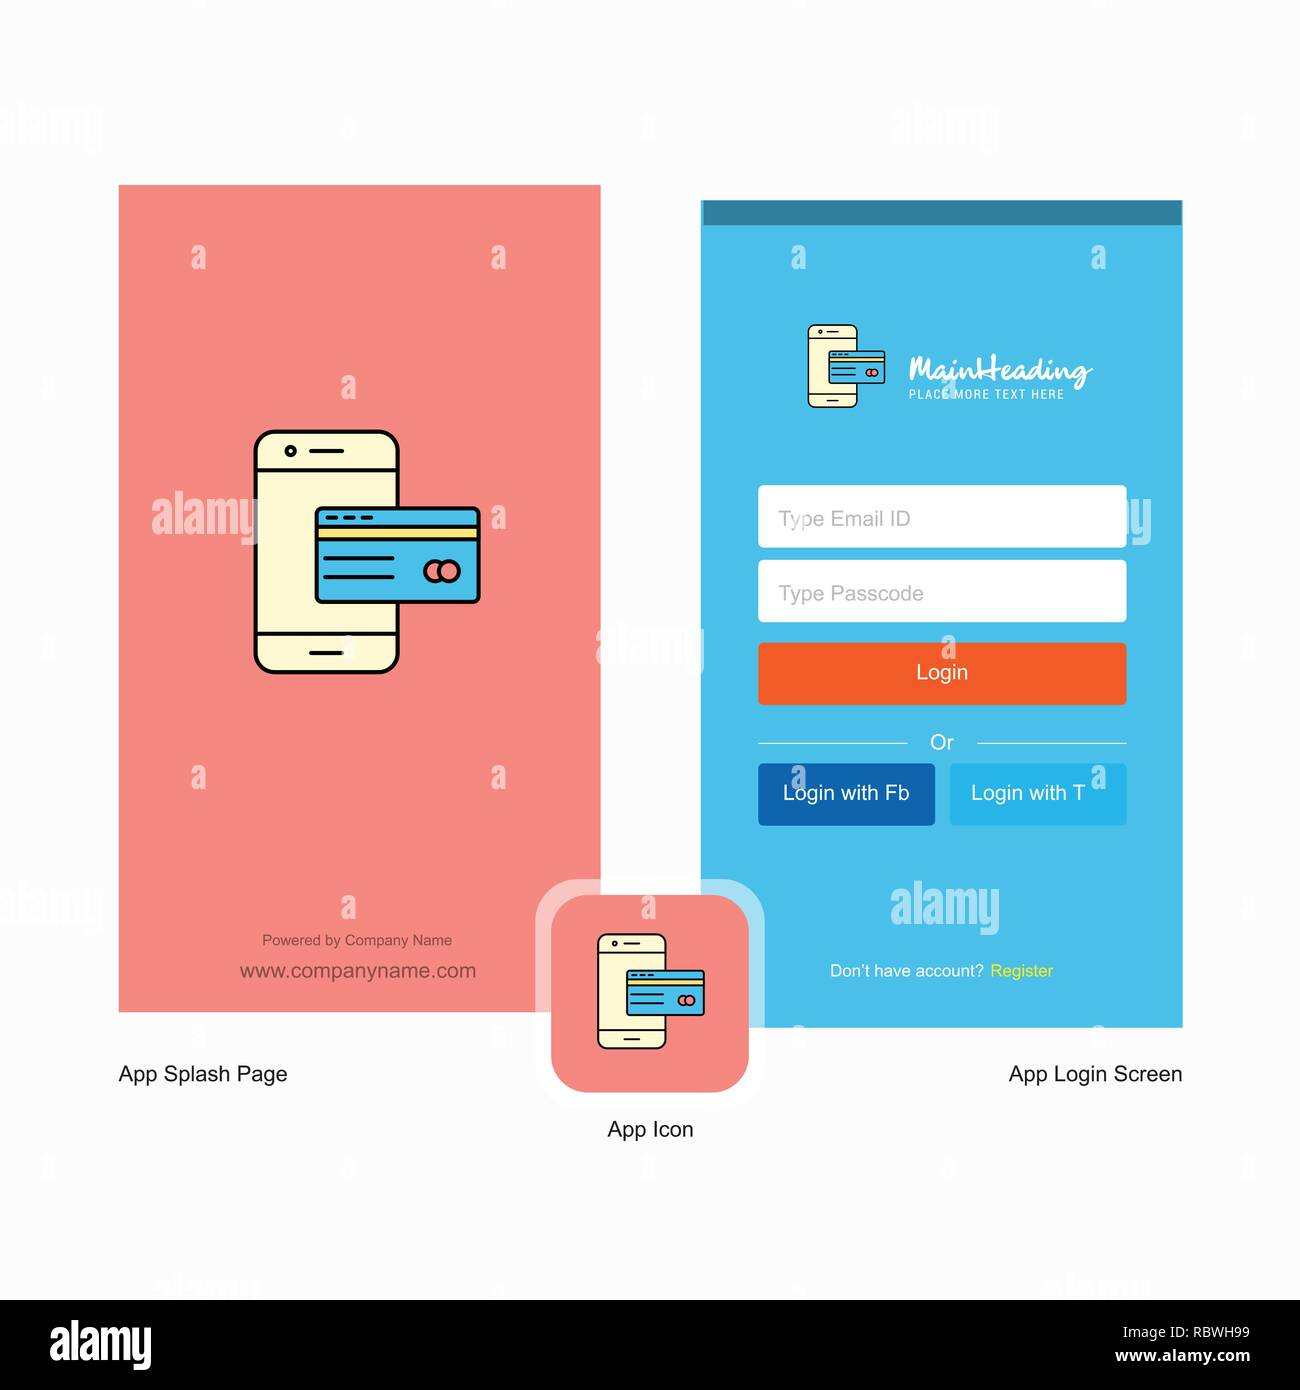 Company Online banking Splash Screen and Login Page design